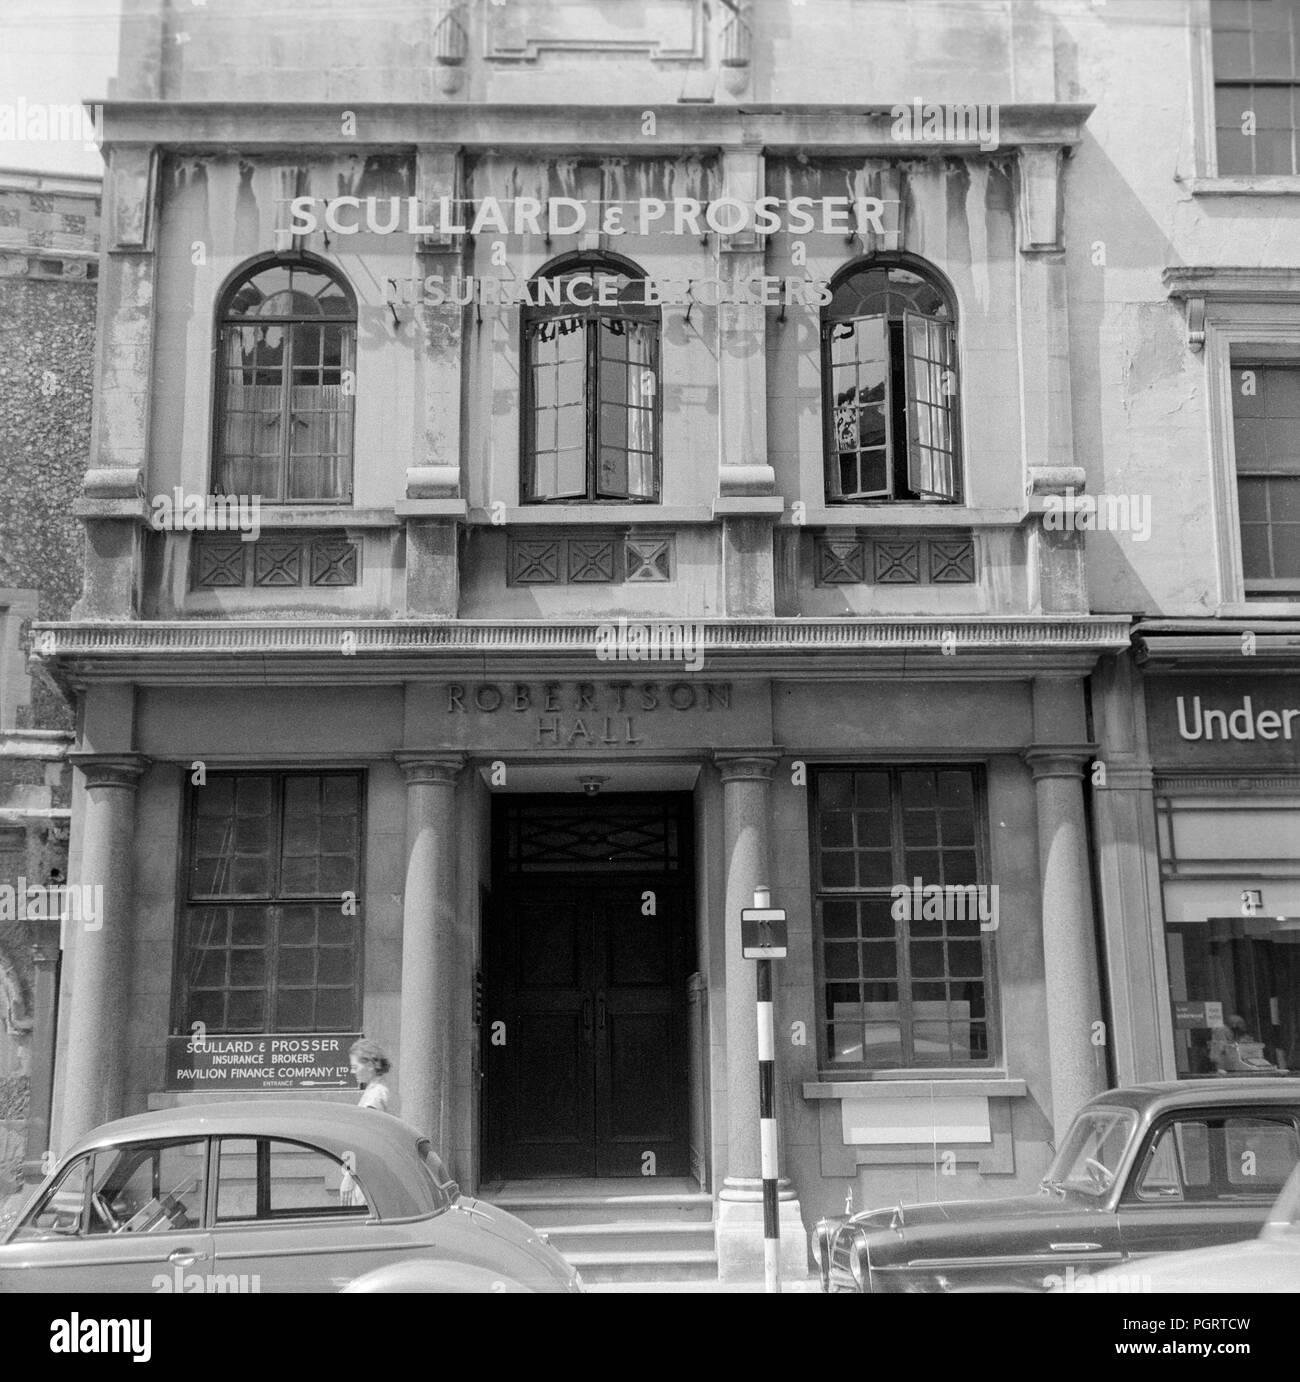 The Robertson Hall building, with then offices of Scullard and Proser, insurance brokers, in Brighton on the South Coast of England, during the early 1960s. - Stock Image